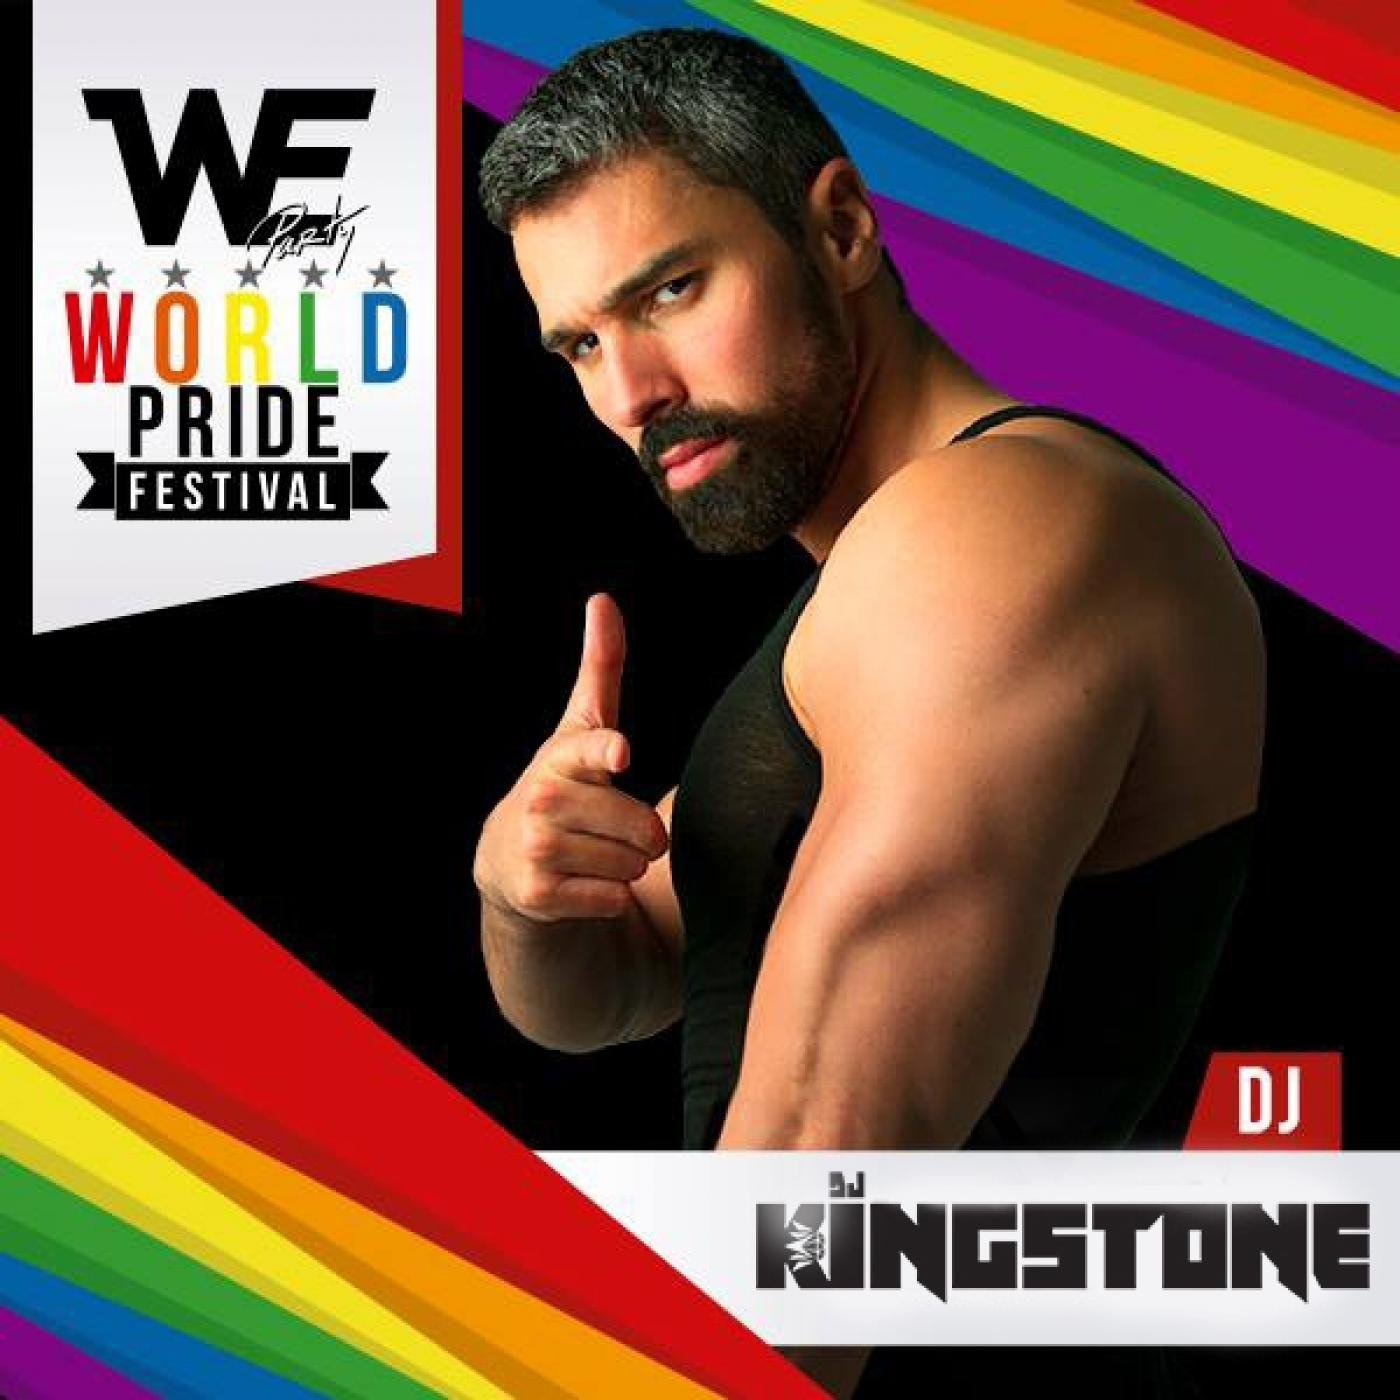 Dj Kingstone